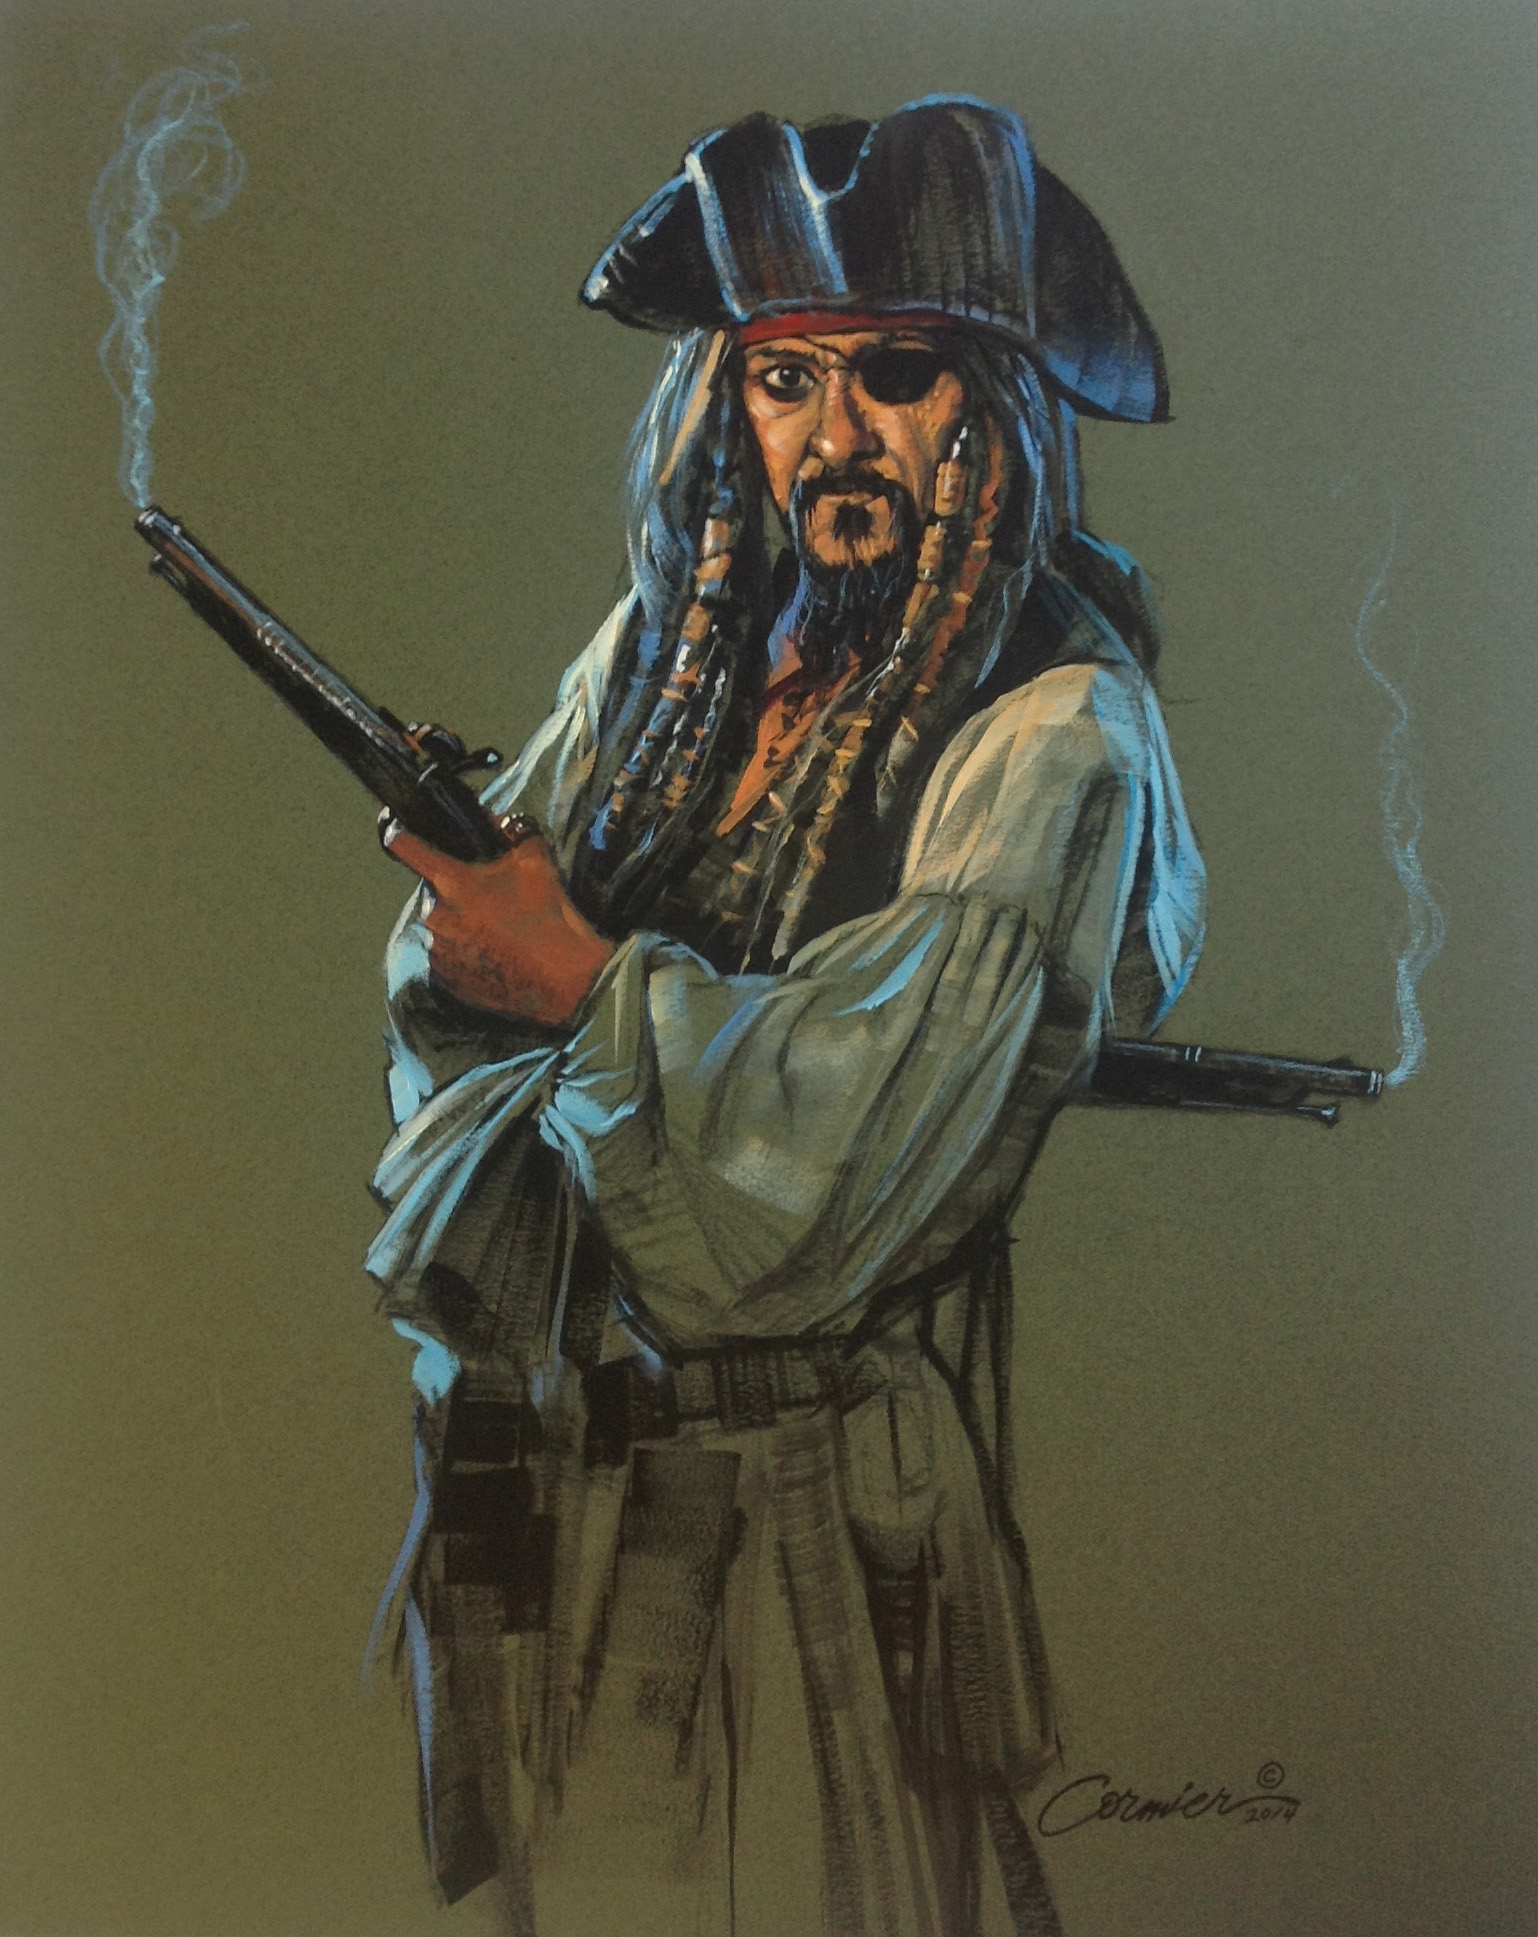 Pirate with pistols wil cormier fine art gallery for Fine art gallery online